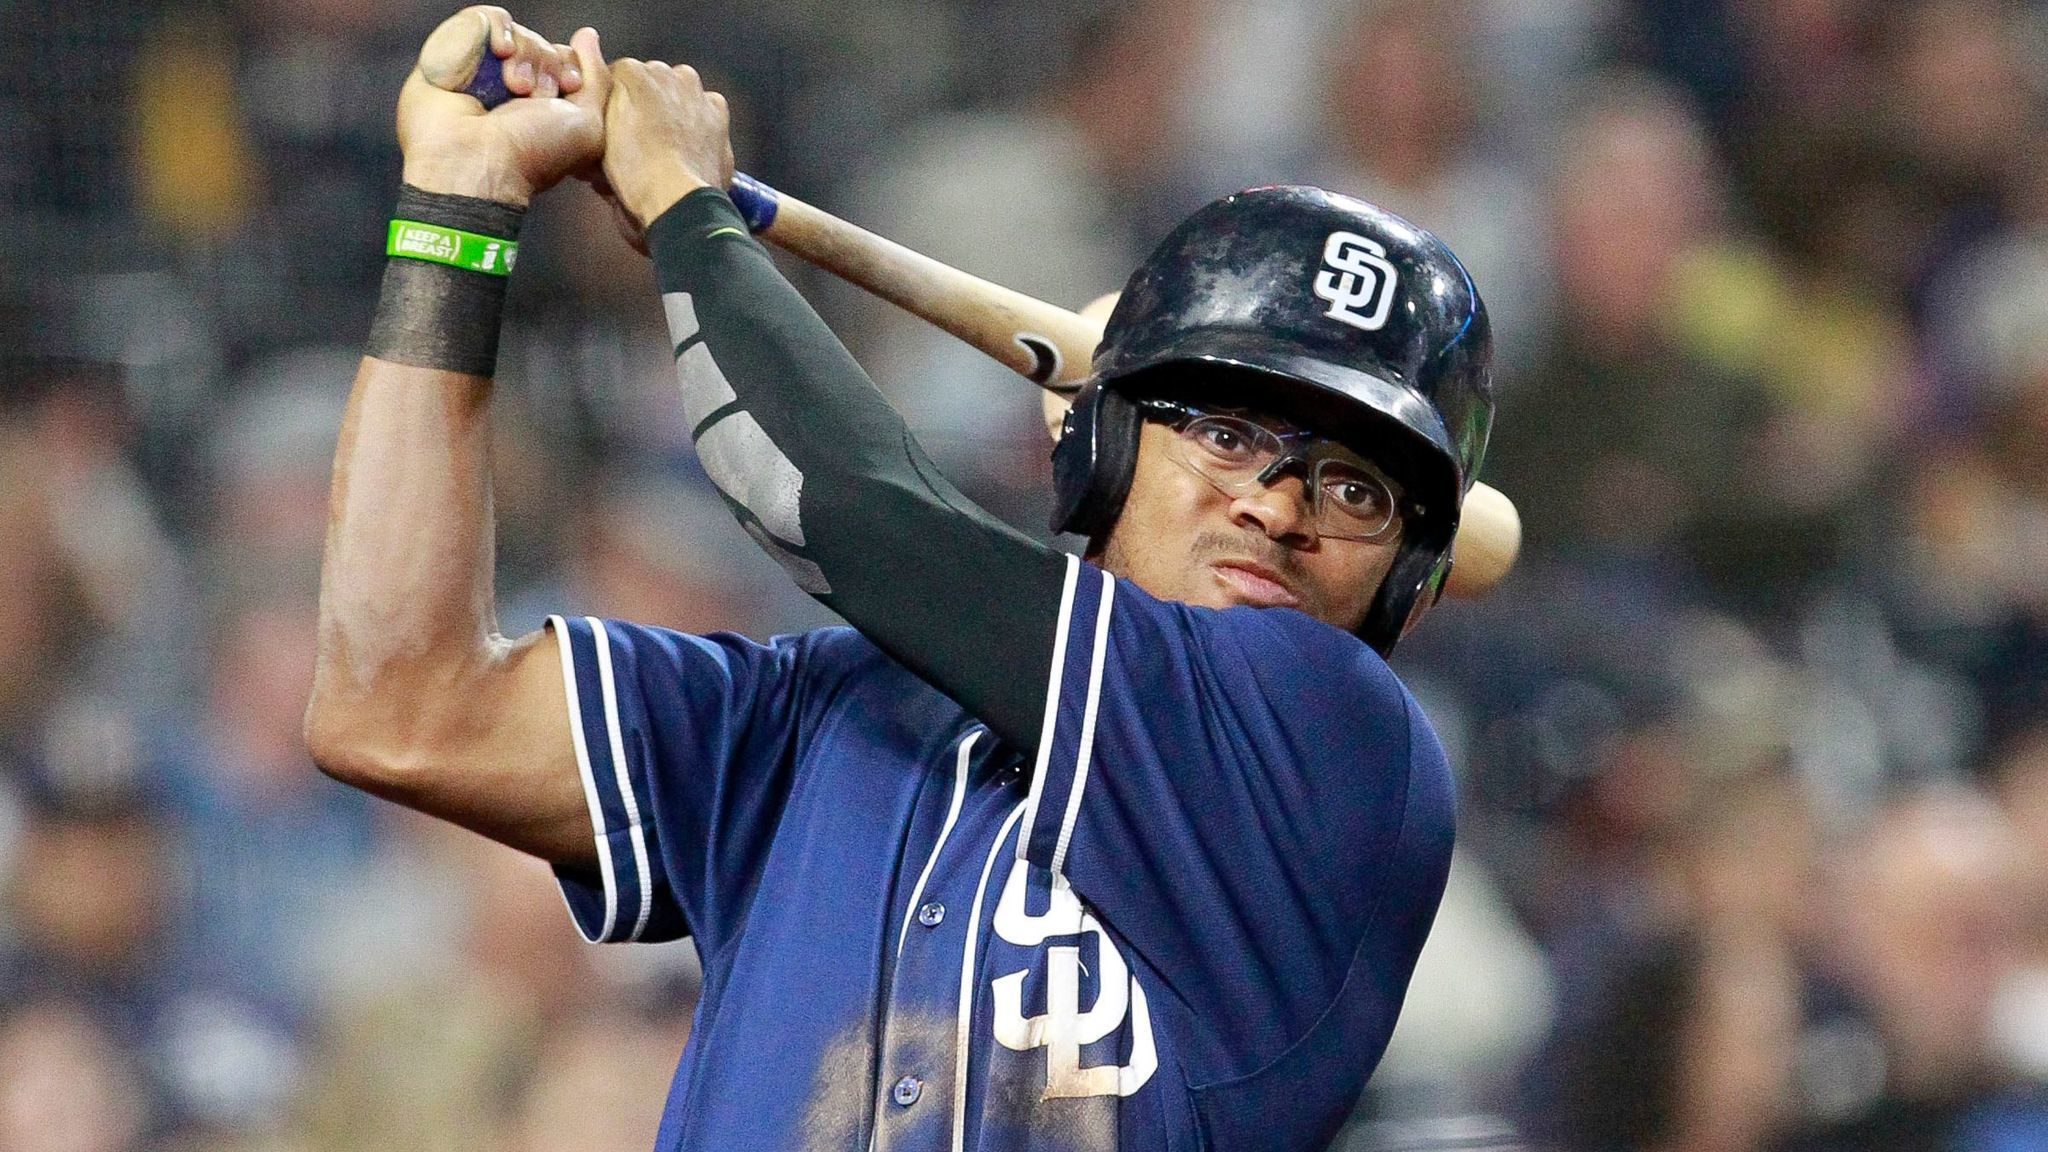 Sd-sp-padres-minors-buddy-reed-20170626